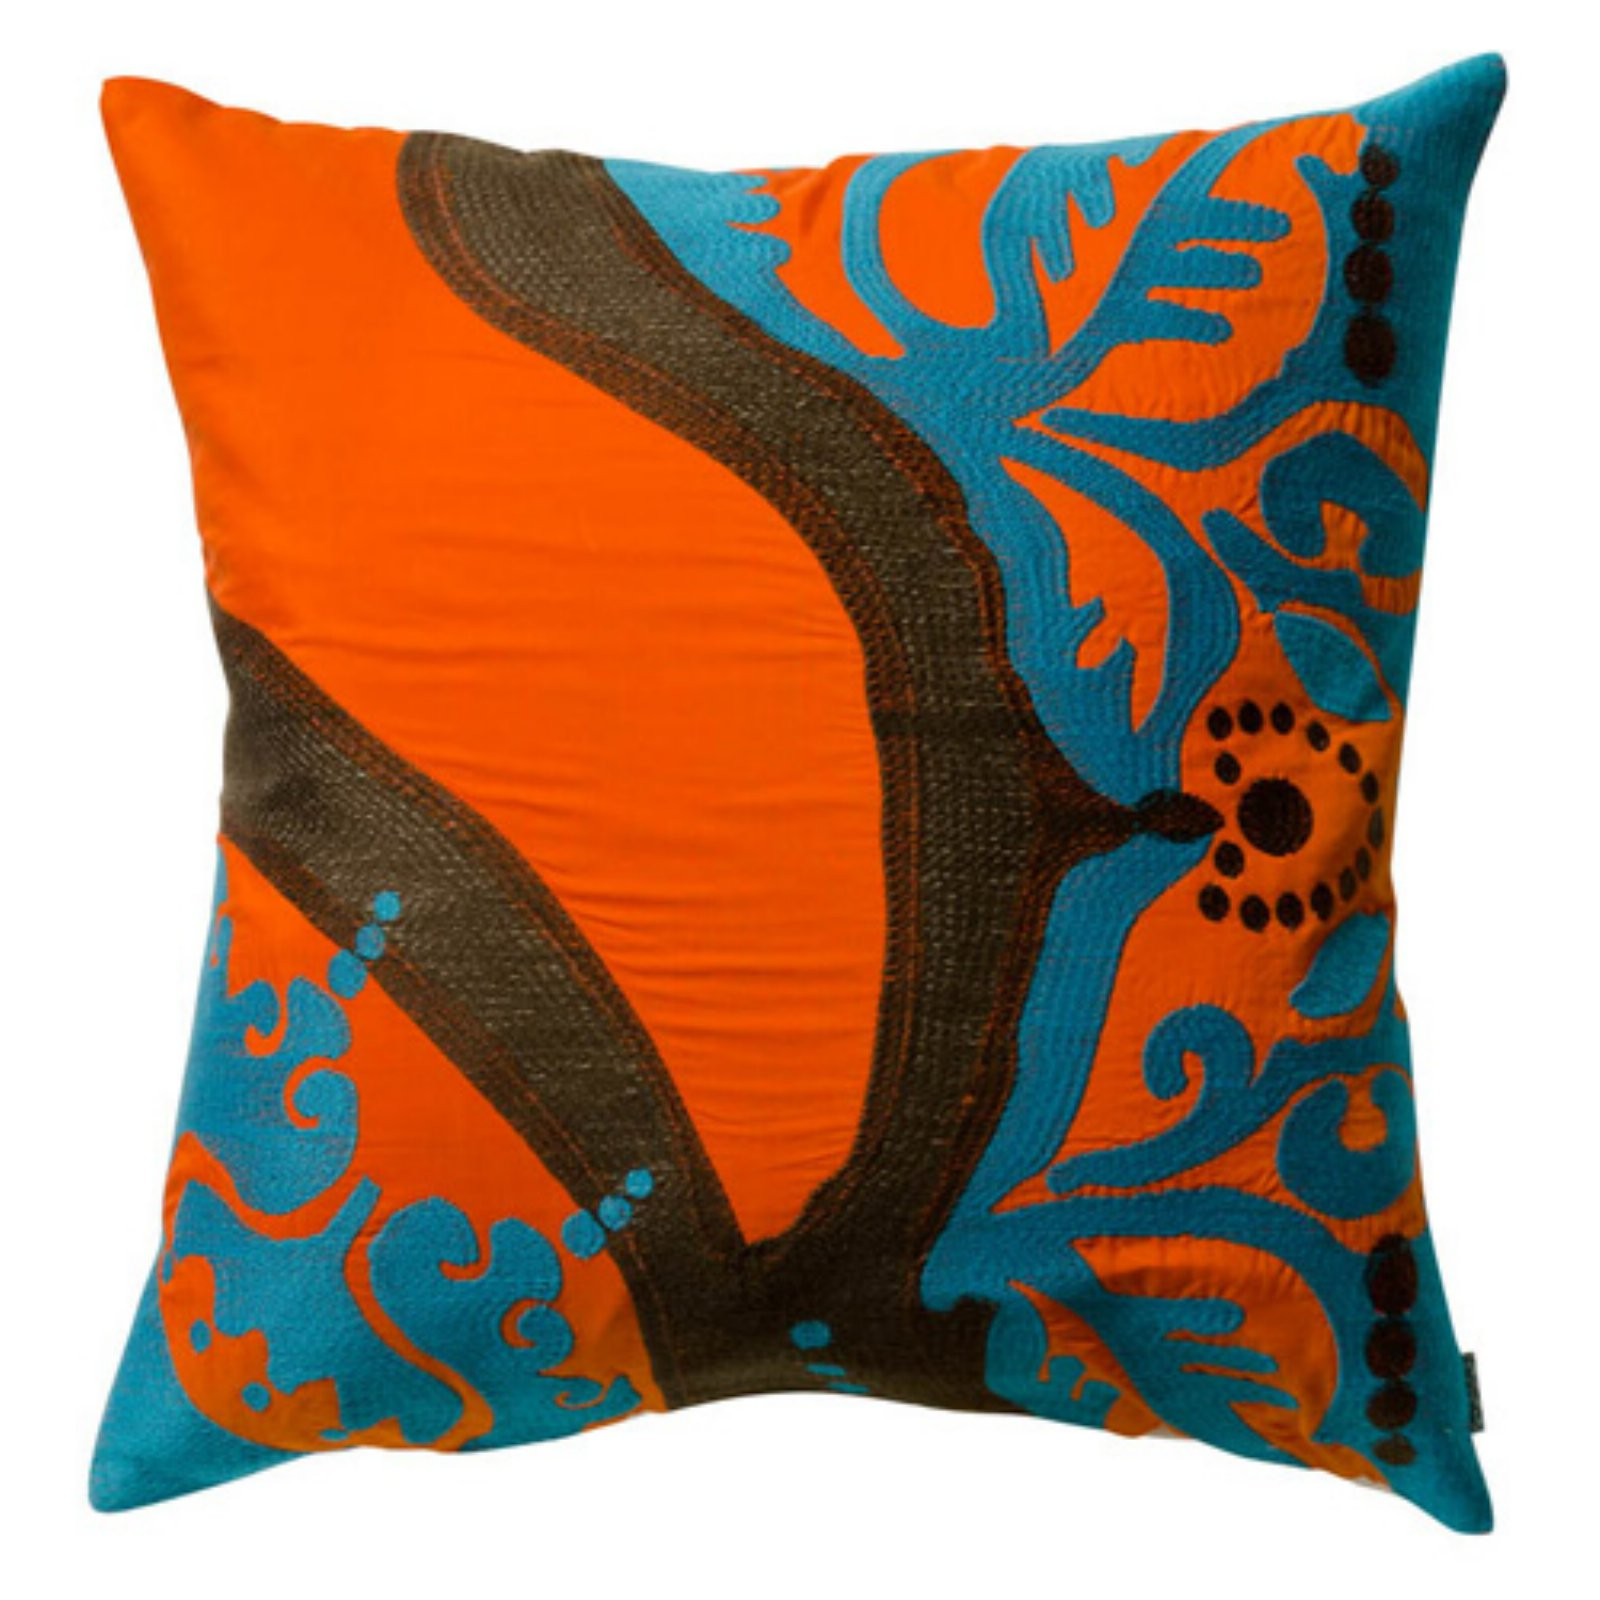 Koko Company 18 in. Coptic Square Pillow - Orange